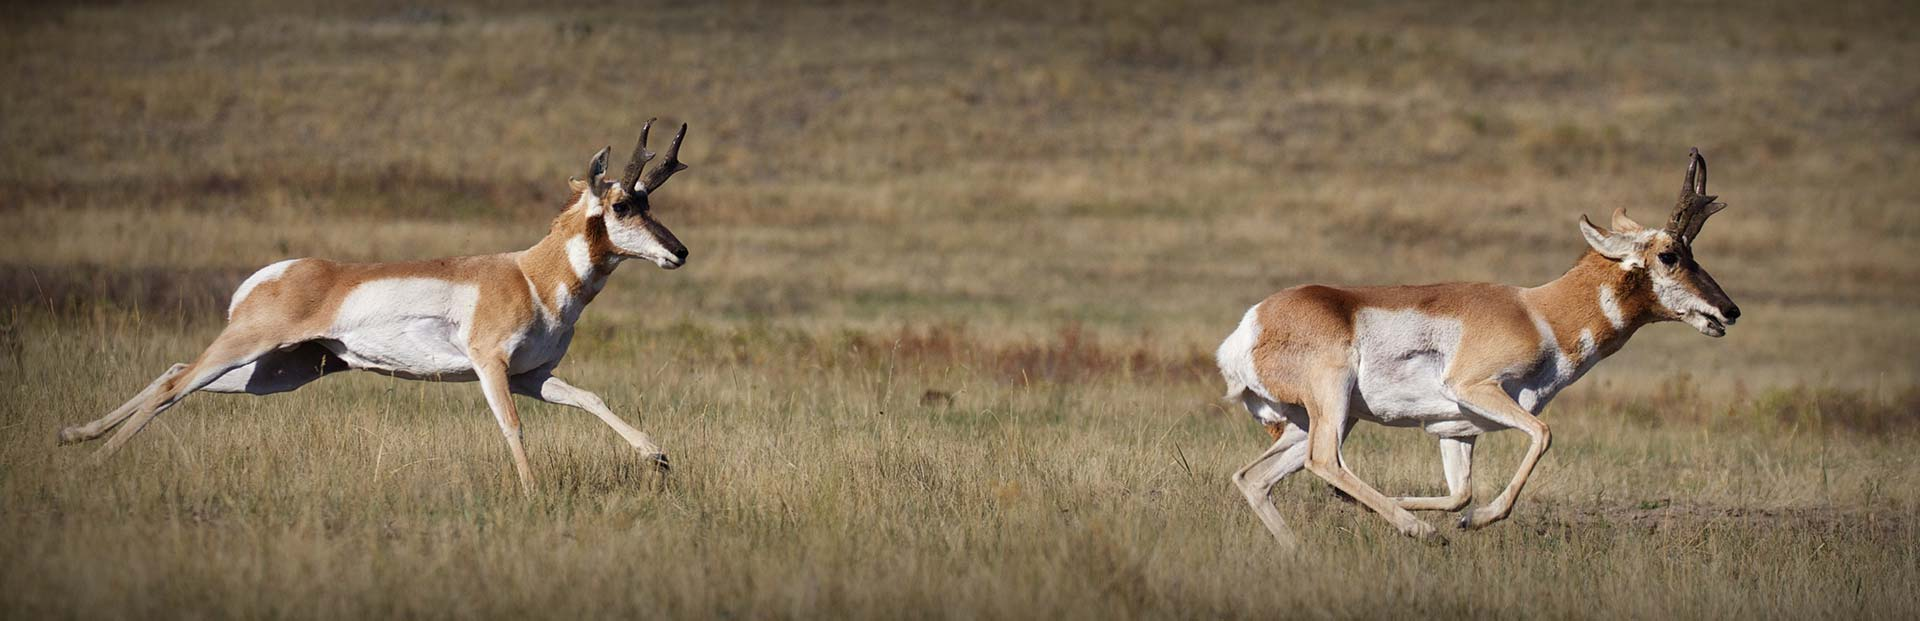 Colorado Pronghorn Antelope Hunting